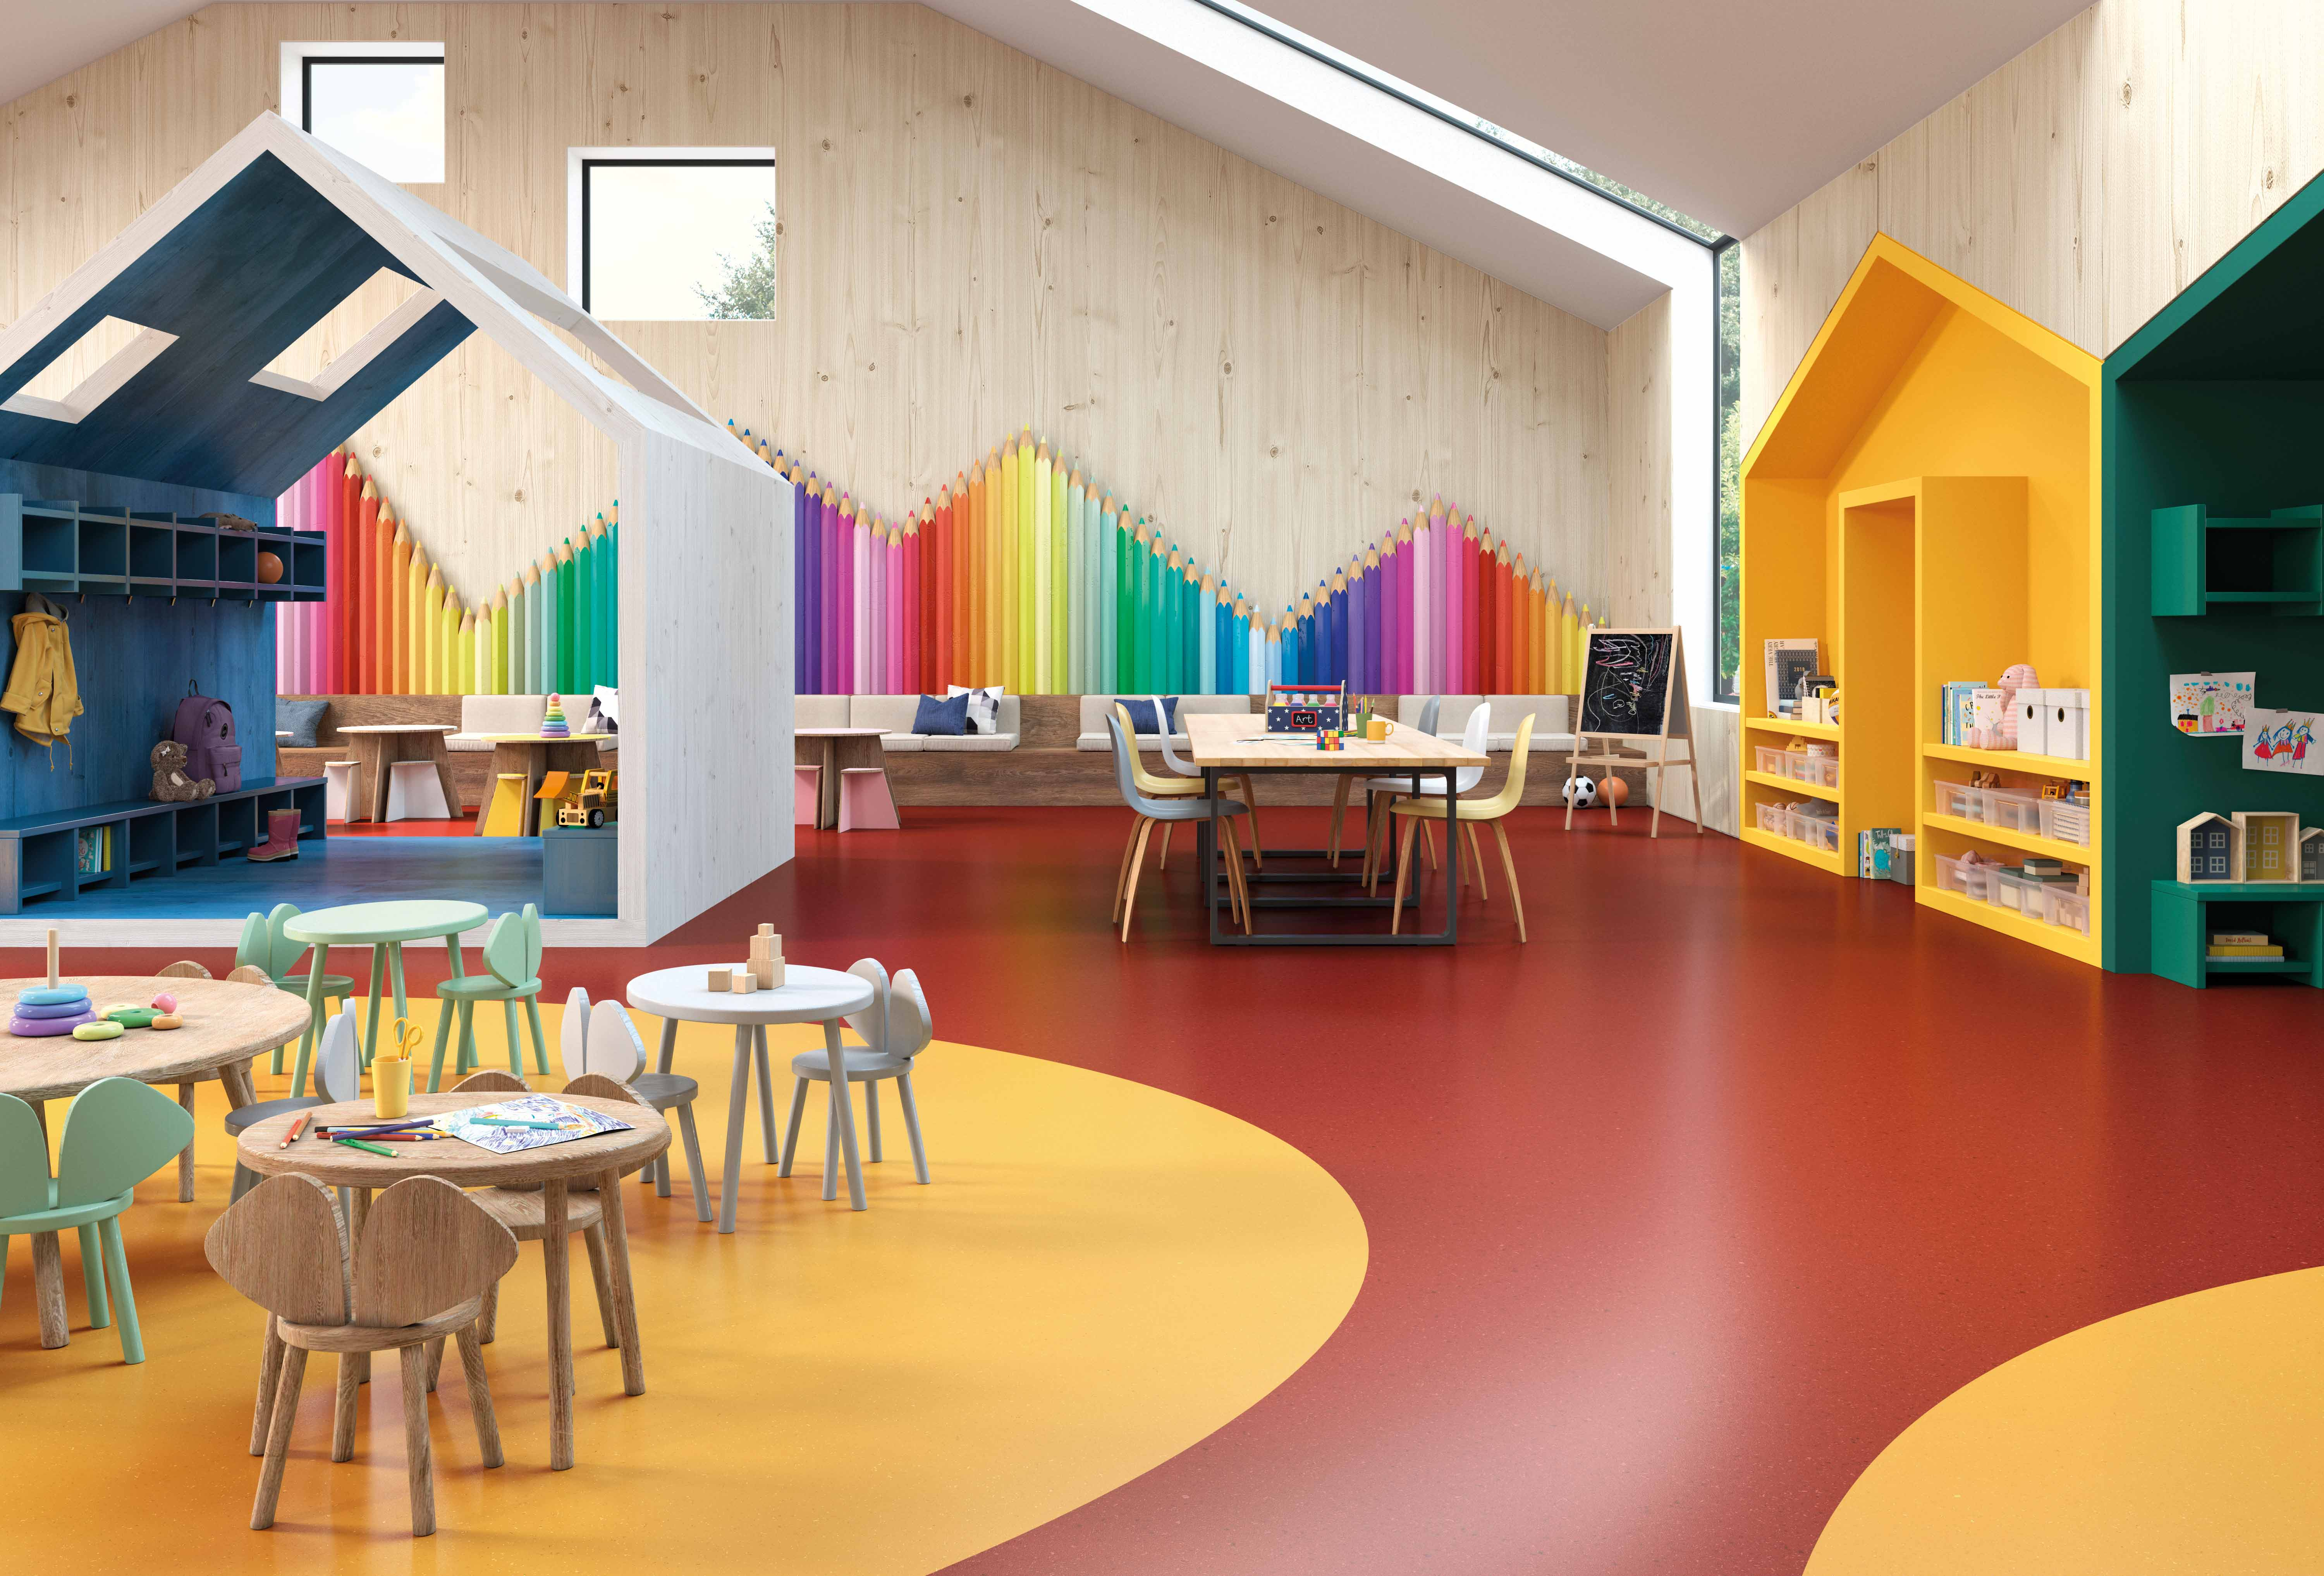 How do you create a safe and creative environment in daycare?